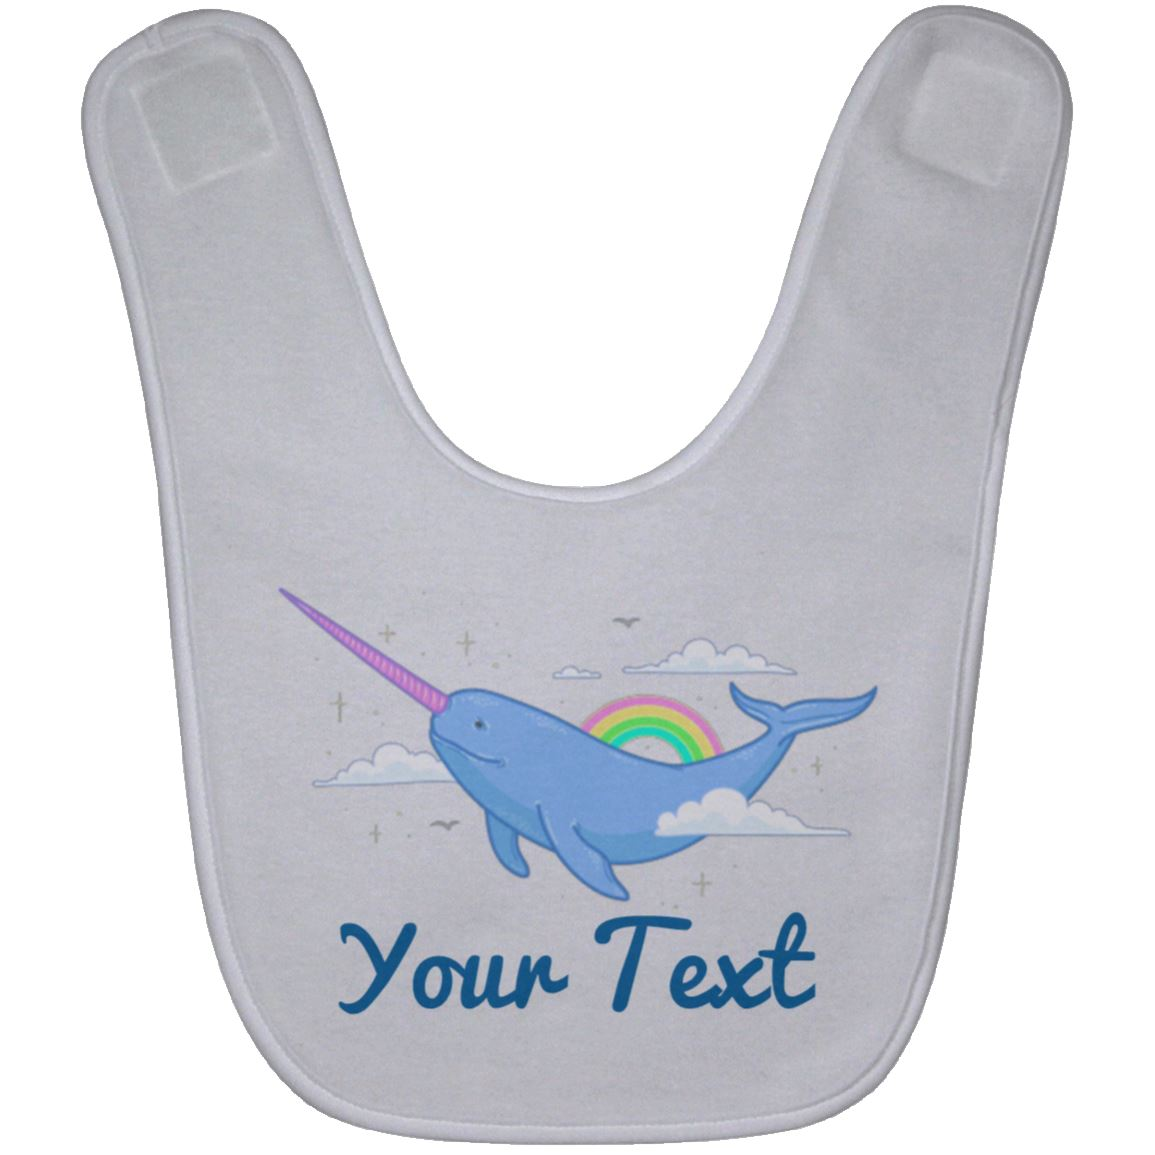 Personalized Magical Narwhal Baby Bib Mermaid Baby Items White